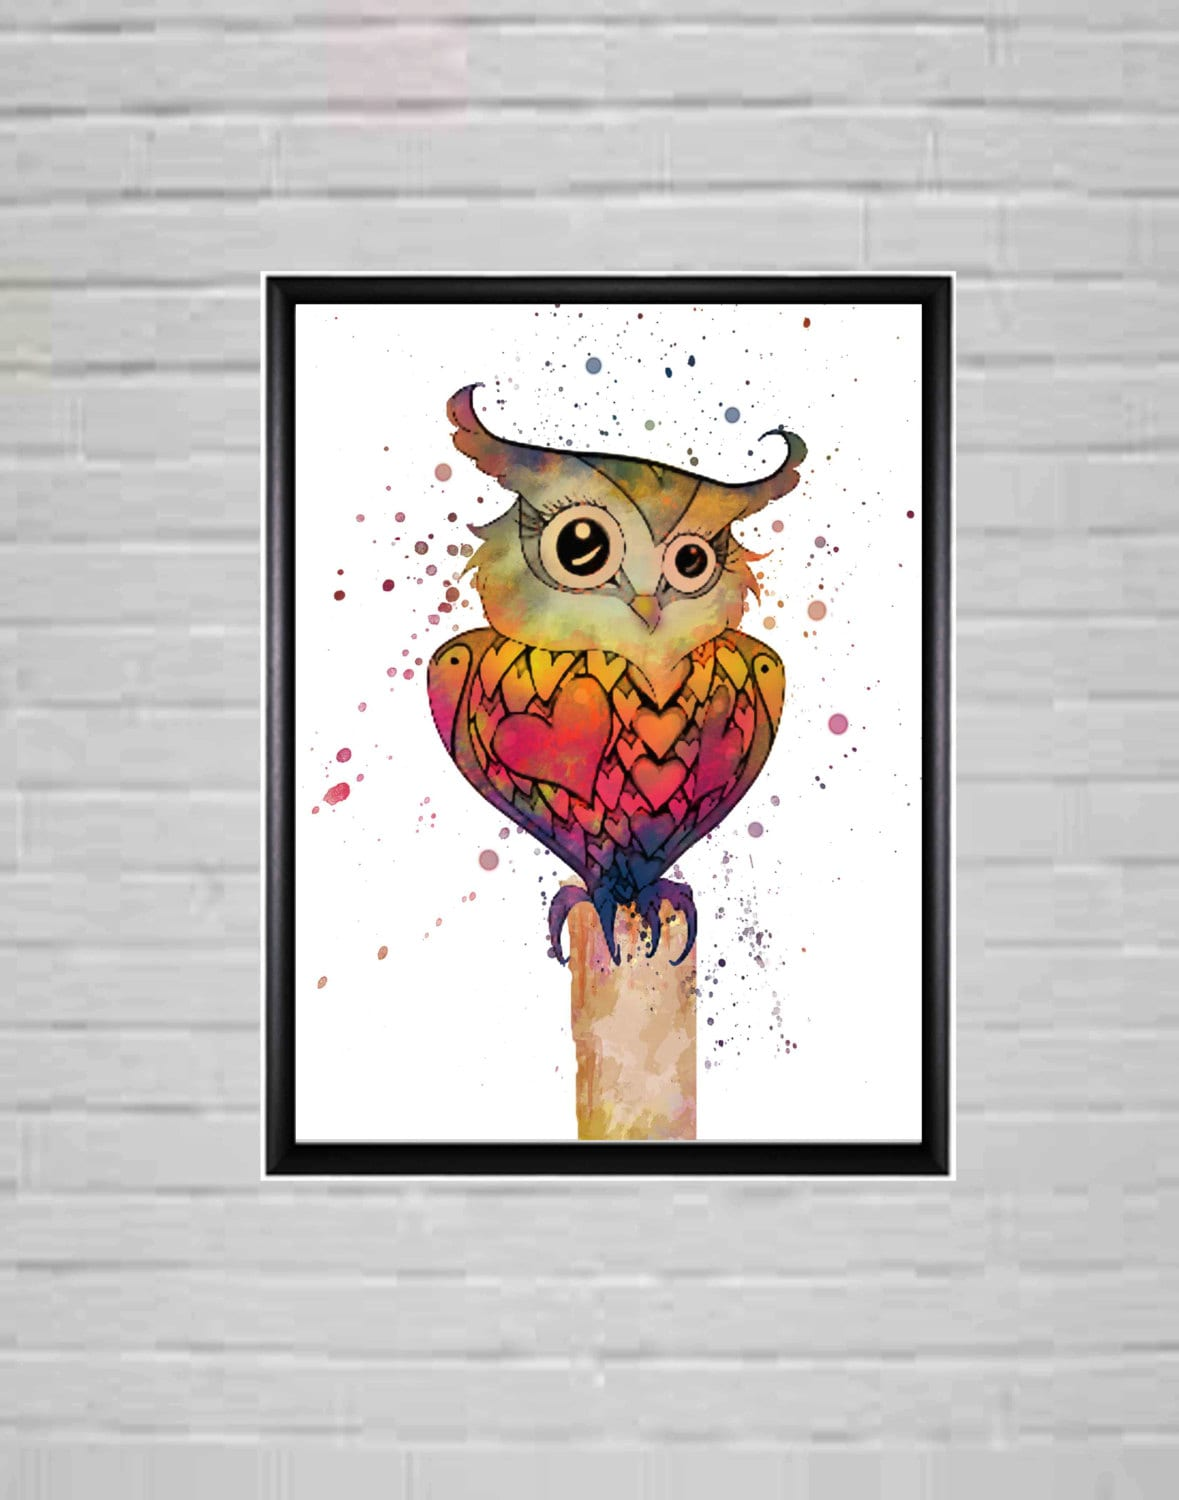 Owl Hoot Watercolour Prints Wall Art Digital Watercolour Art Room Decor Owl Room Decor Ideas Kids